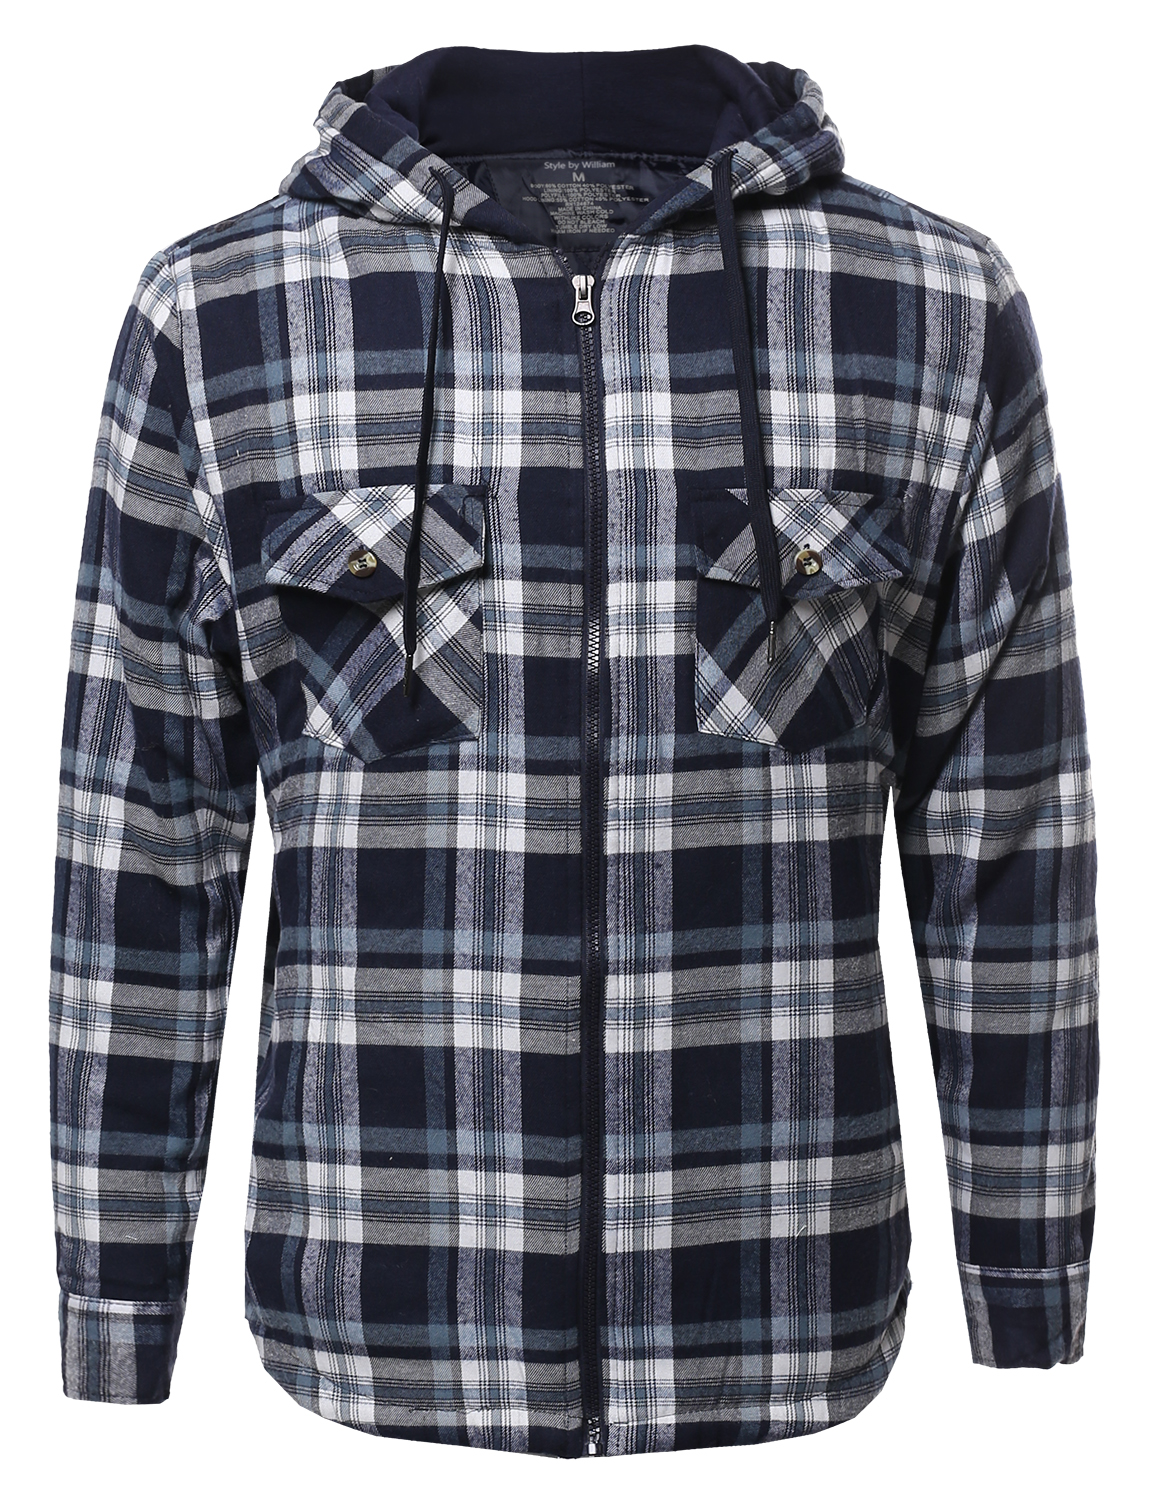 Fashionoutfit men 39 s plaid check flannel light padded zip for Men s hooded flannel shirt jacket